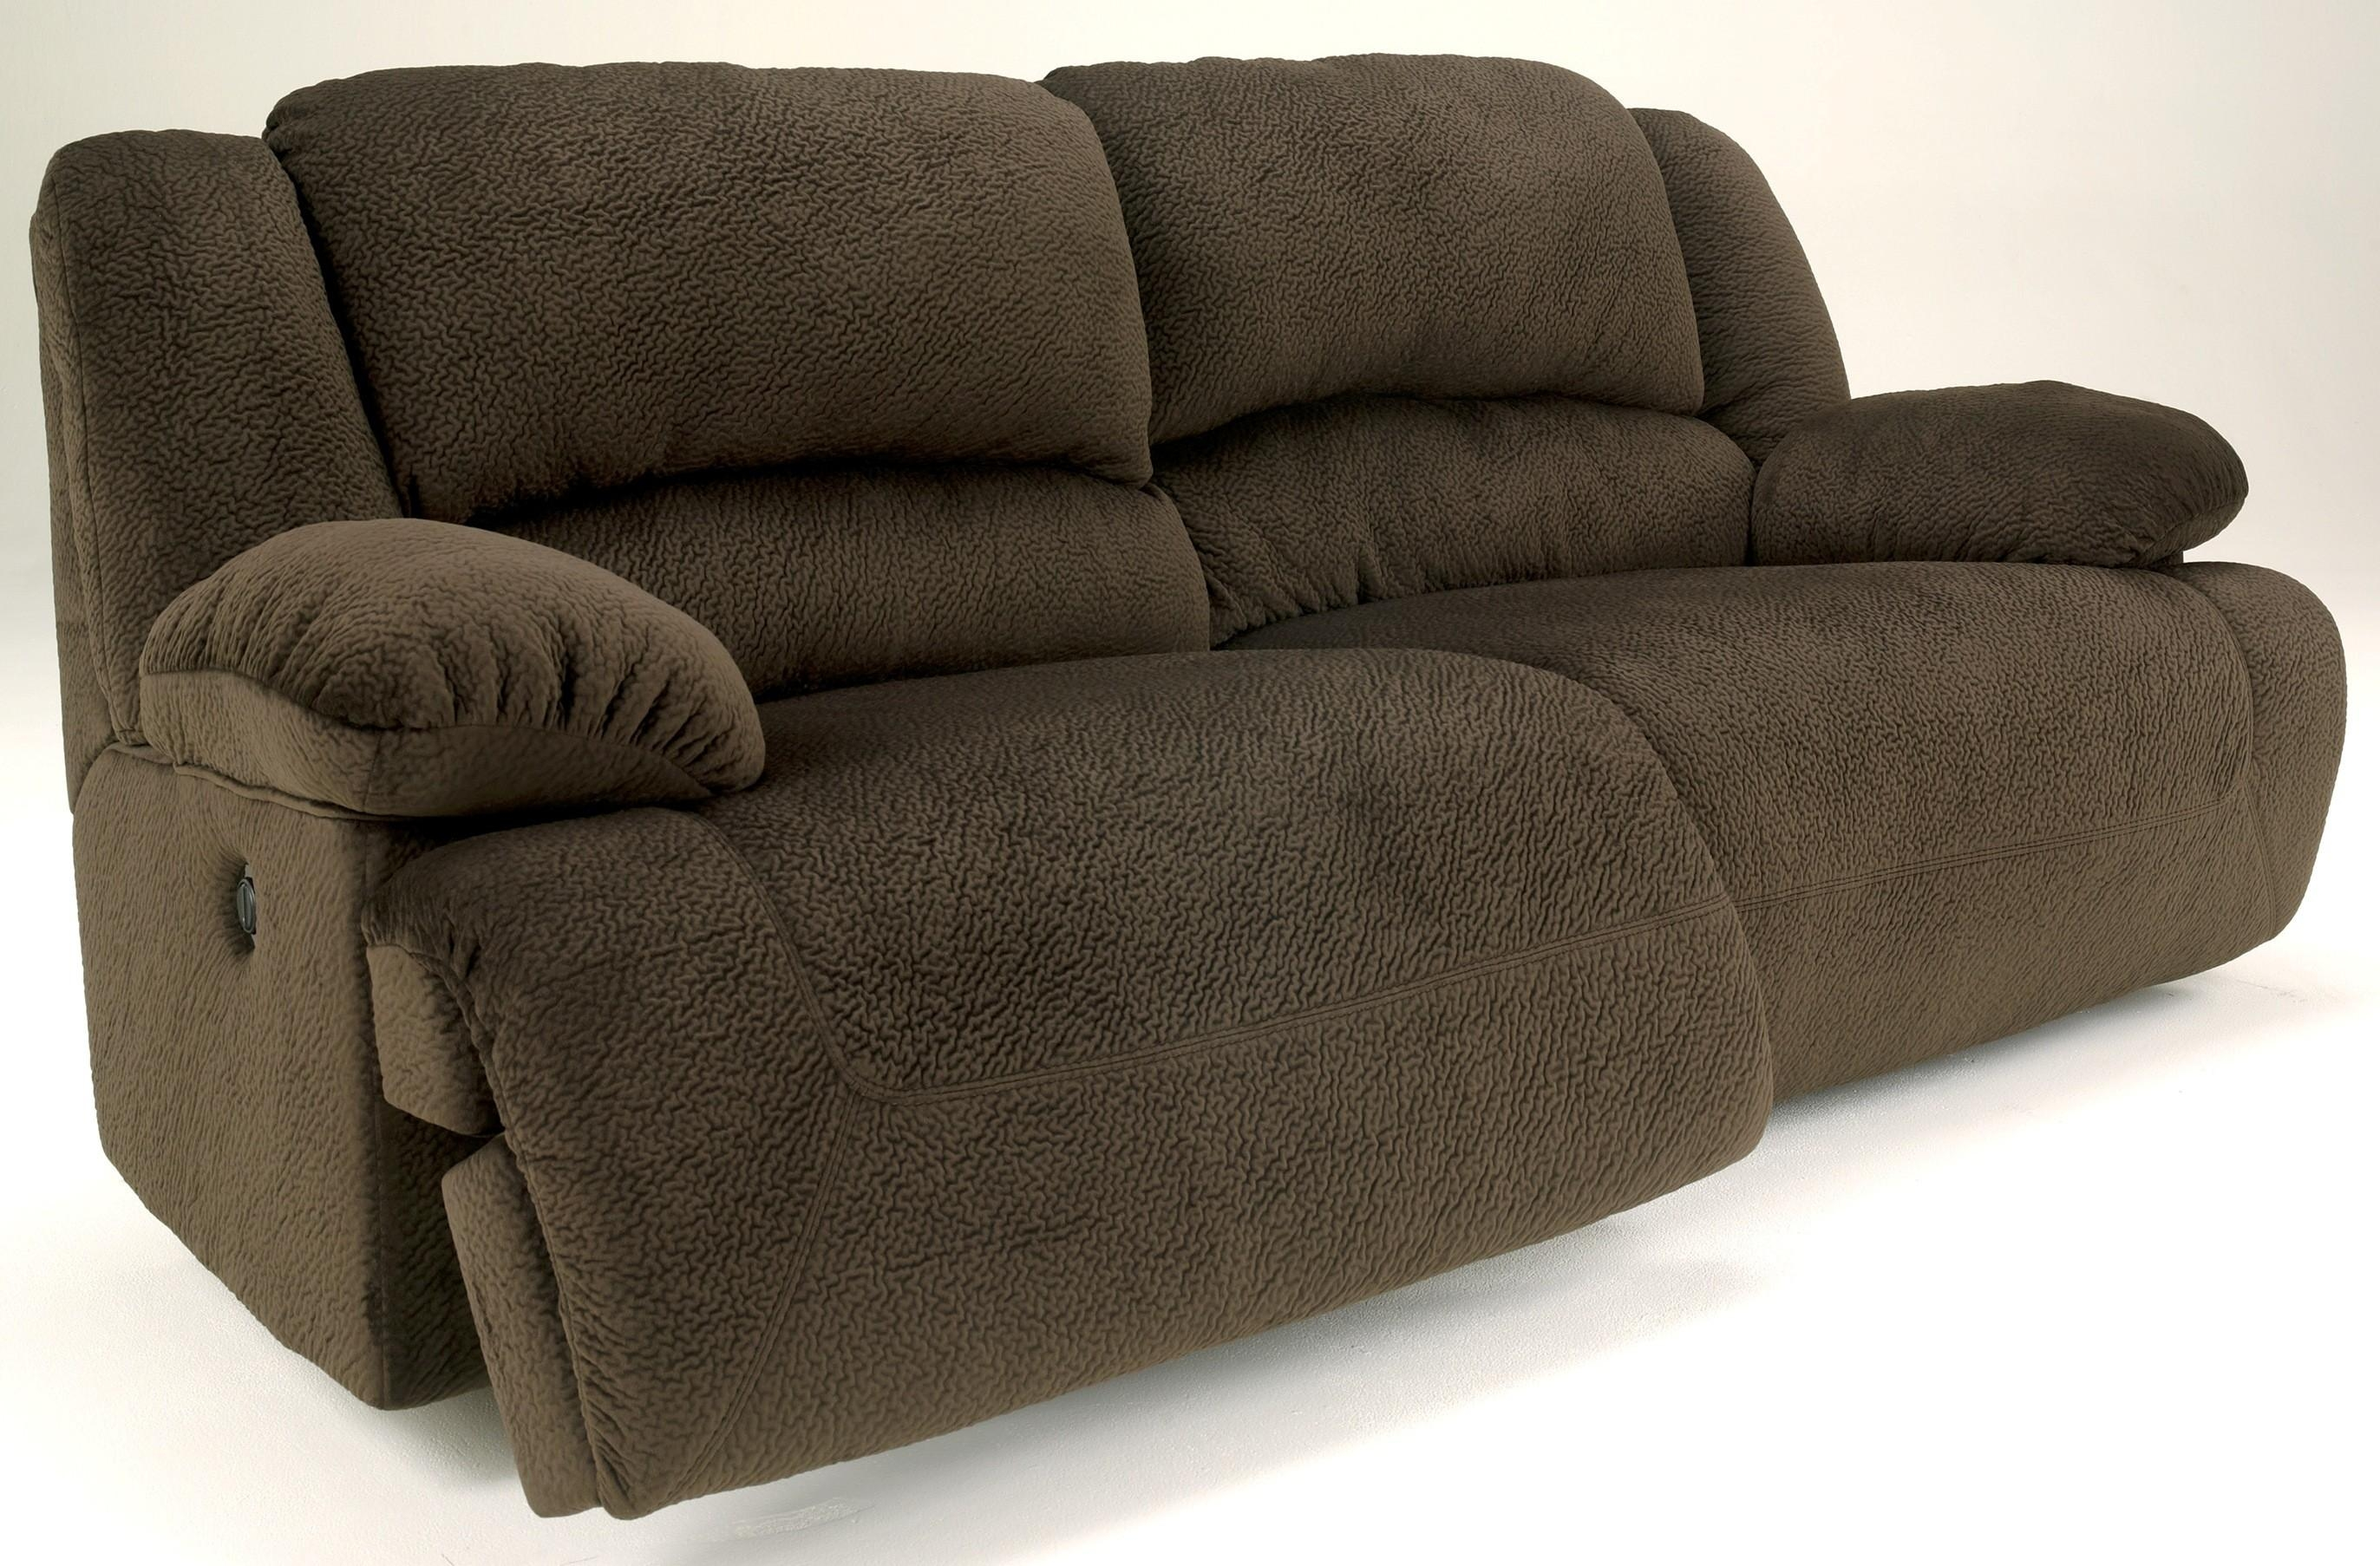 Toletta Chocolate 2 Seat Power Reclining Sofa From Ashley (5670147 Inside 2 Seat Recliner Sofas (View 19 of 20)